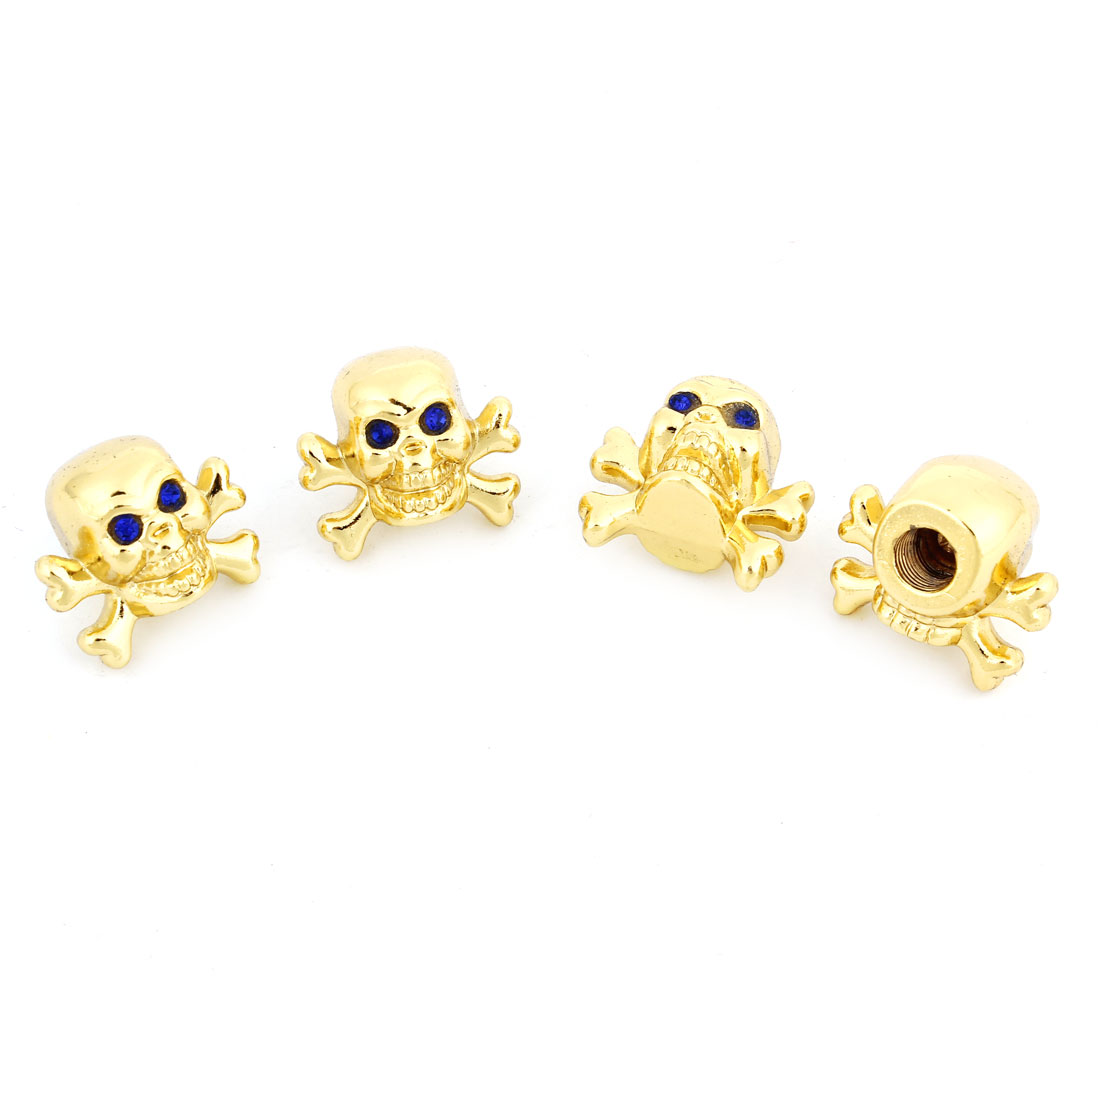 4 Pcs Blue Rhinestones Decor Gold Tone Skull Shape Tyre Valve Stem Caps for Car Truck